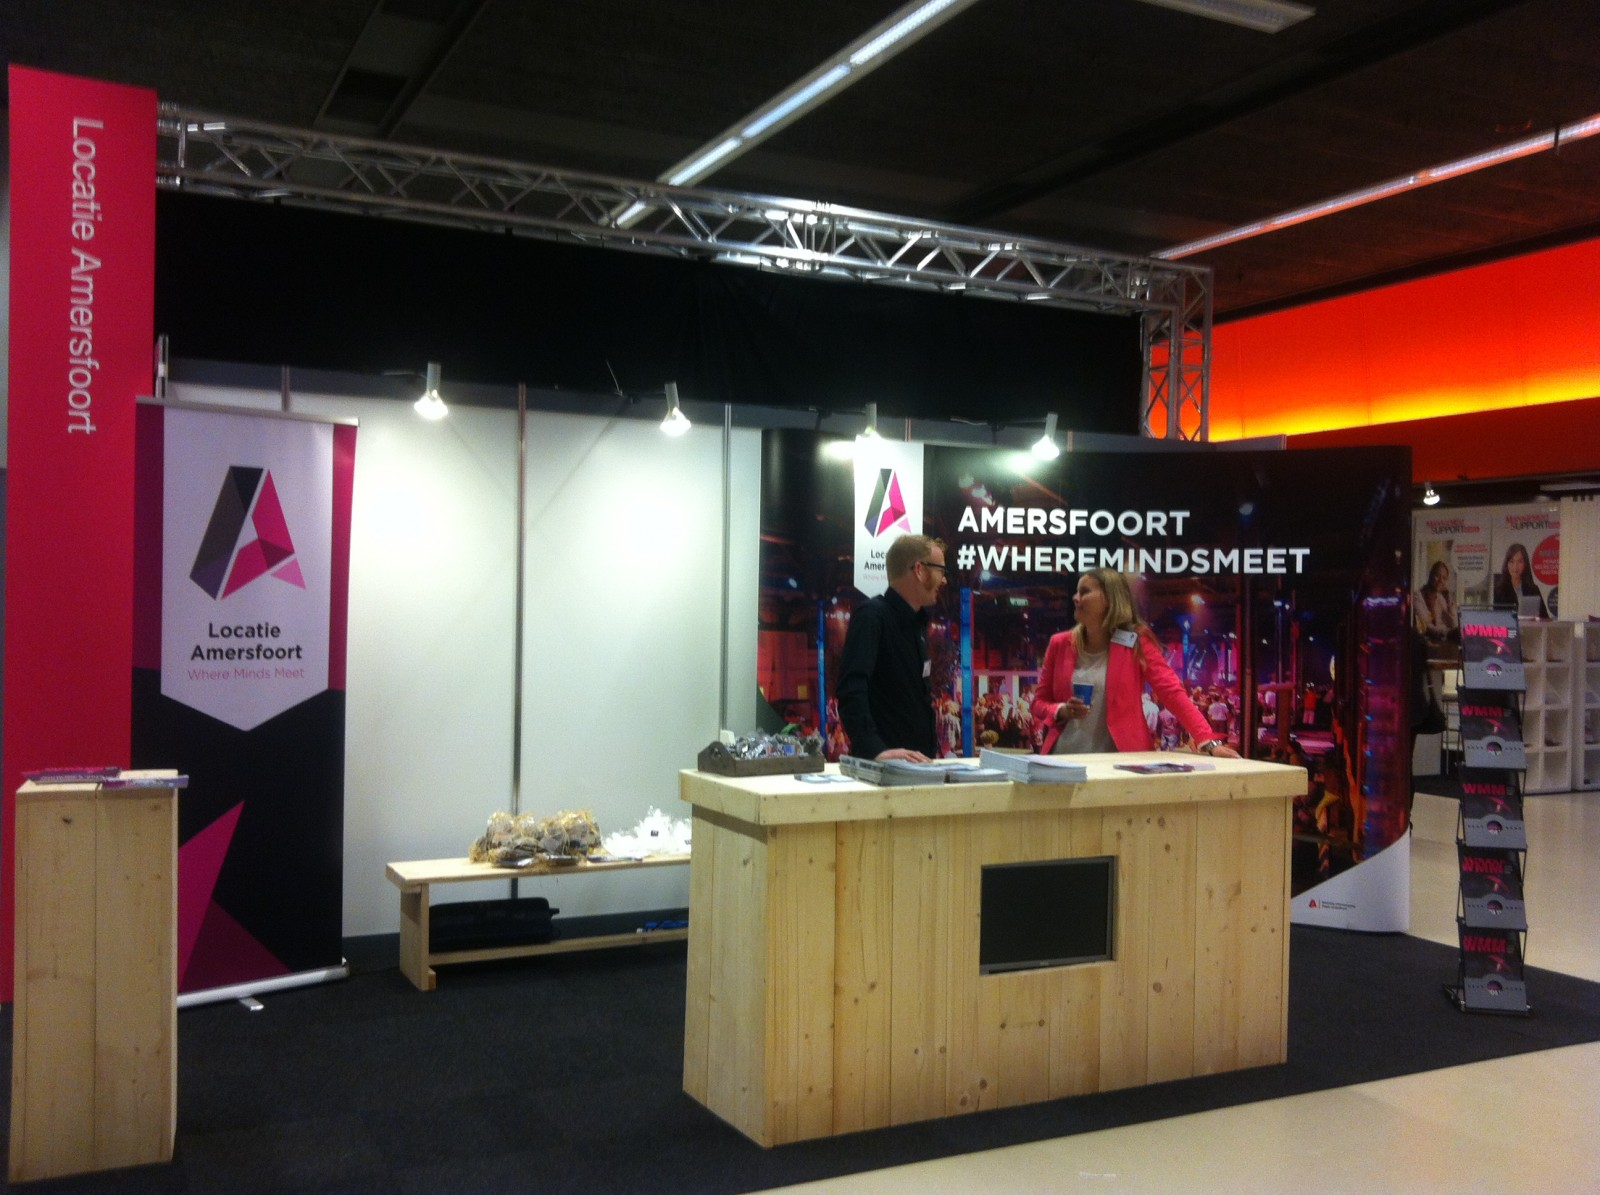 Management Support Live Locatie Amersfoort